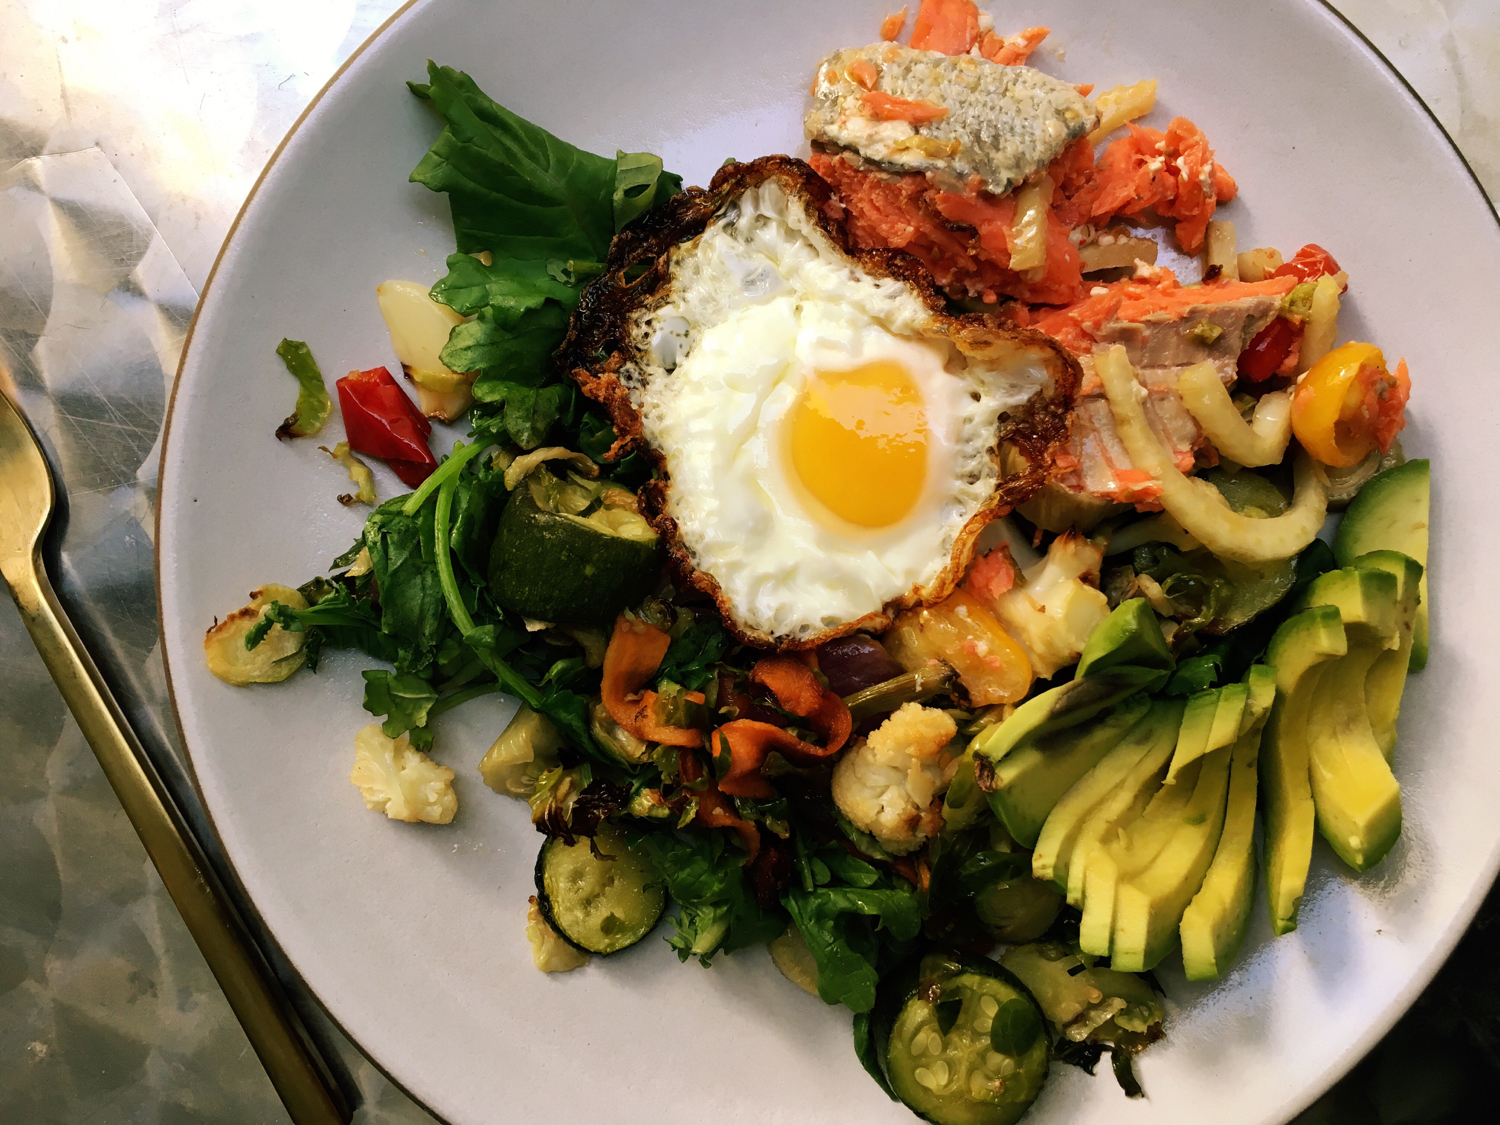 Classic Whole30 breakfast -nothing wrong with eating amazing food  all the time